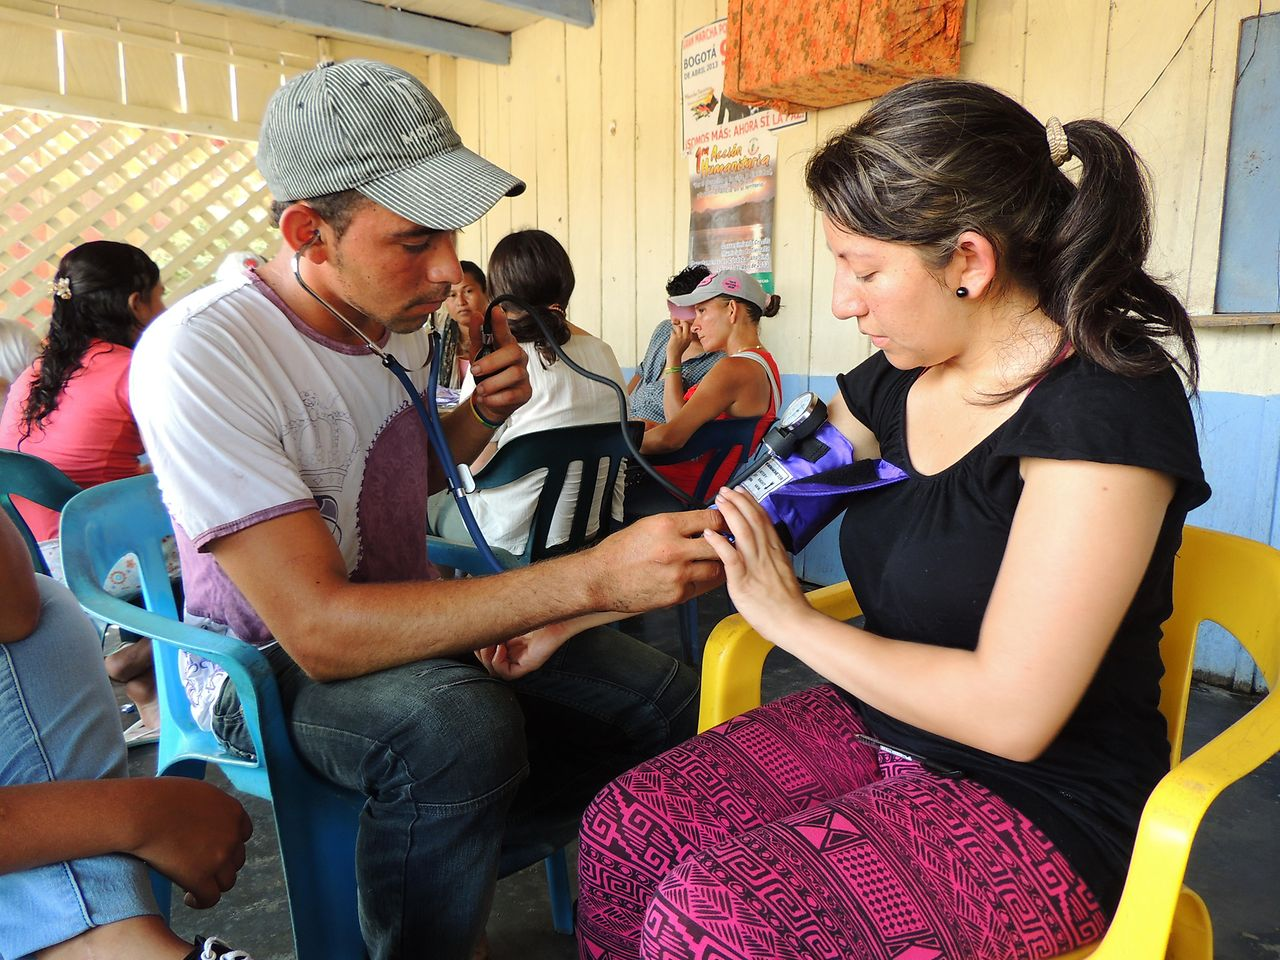 With the help of a medical student (right), a member of the Valle del Río Cimitarra community learns how to measure blood pressure.